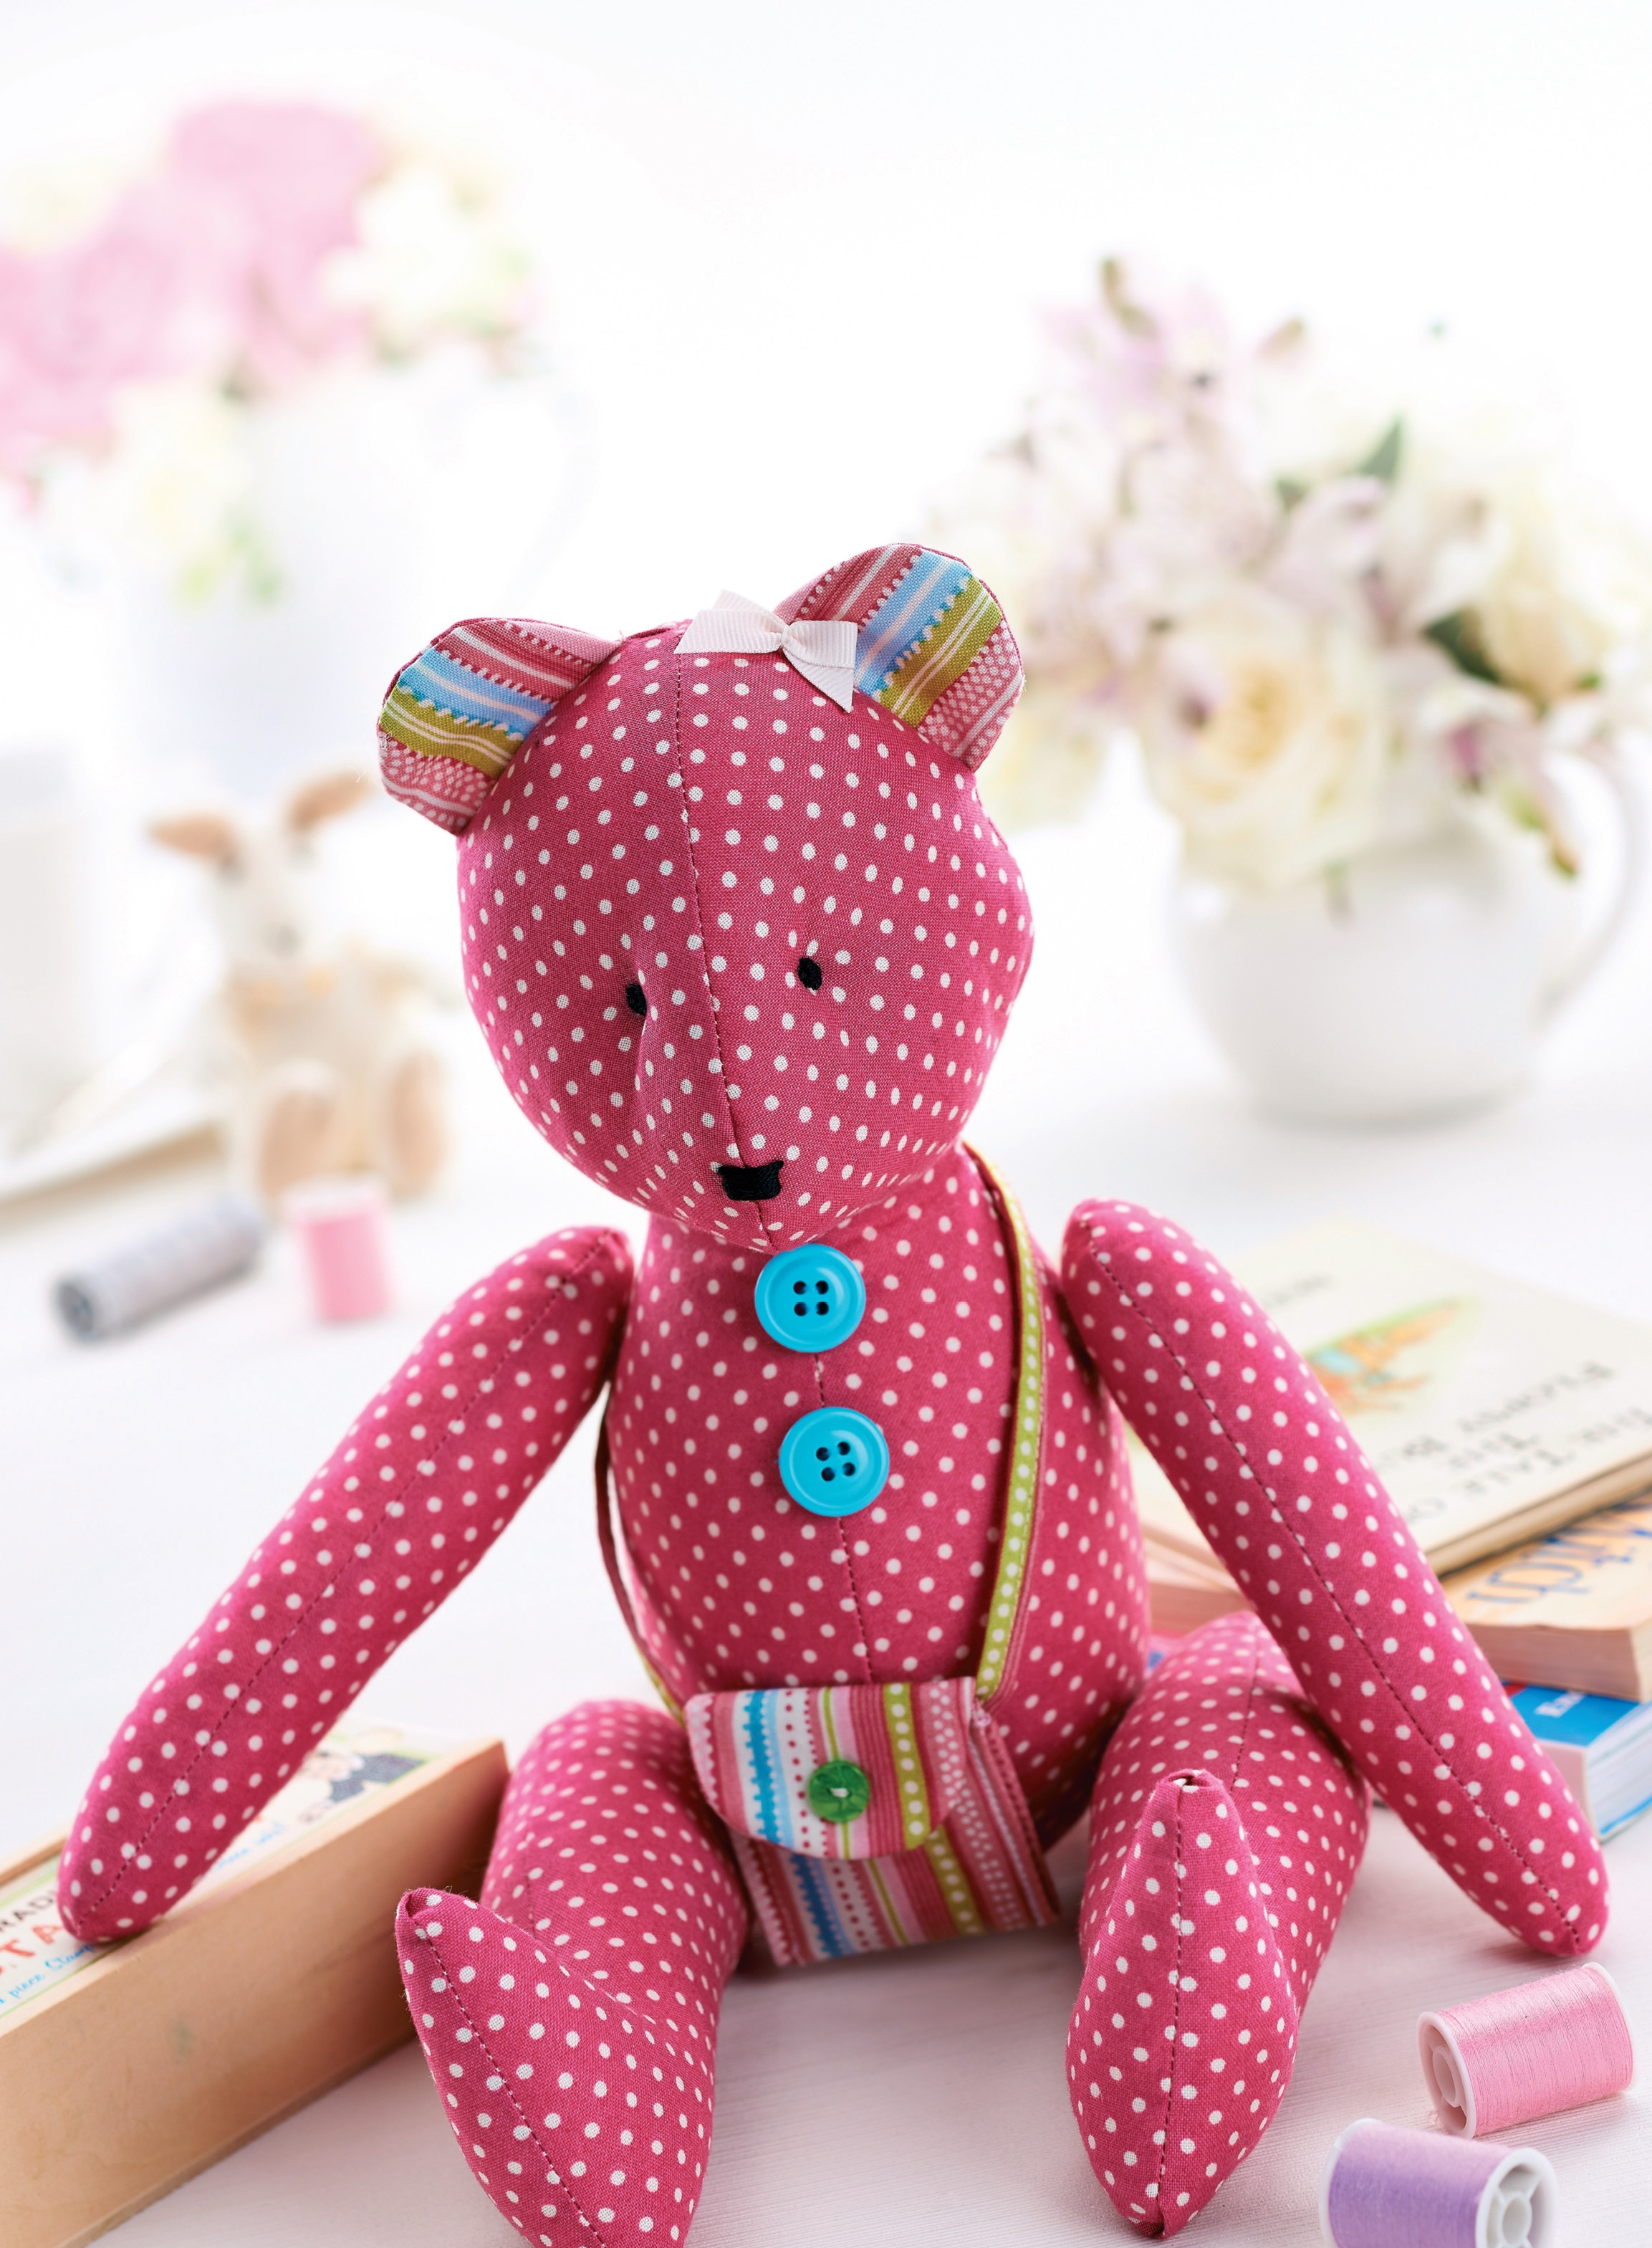 Flo Teddy Bear Magazine Templates Sew Magazine